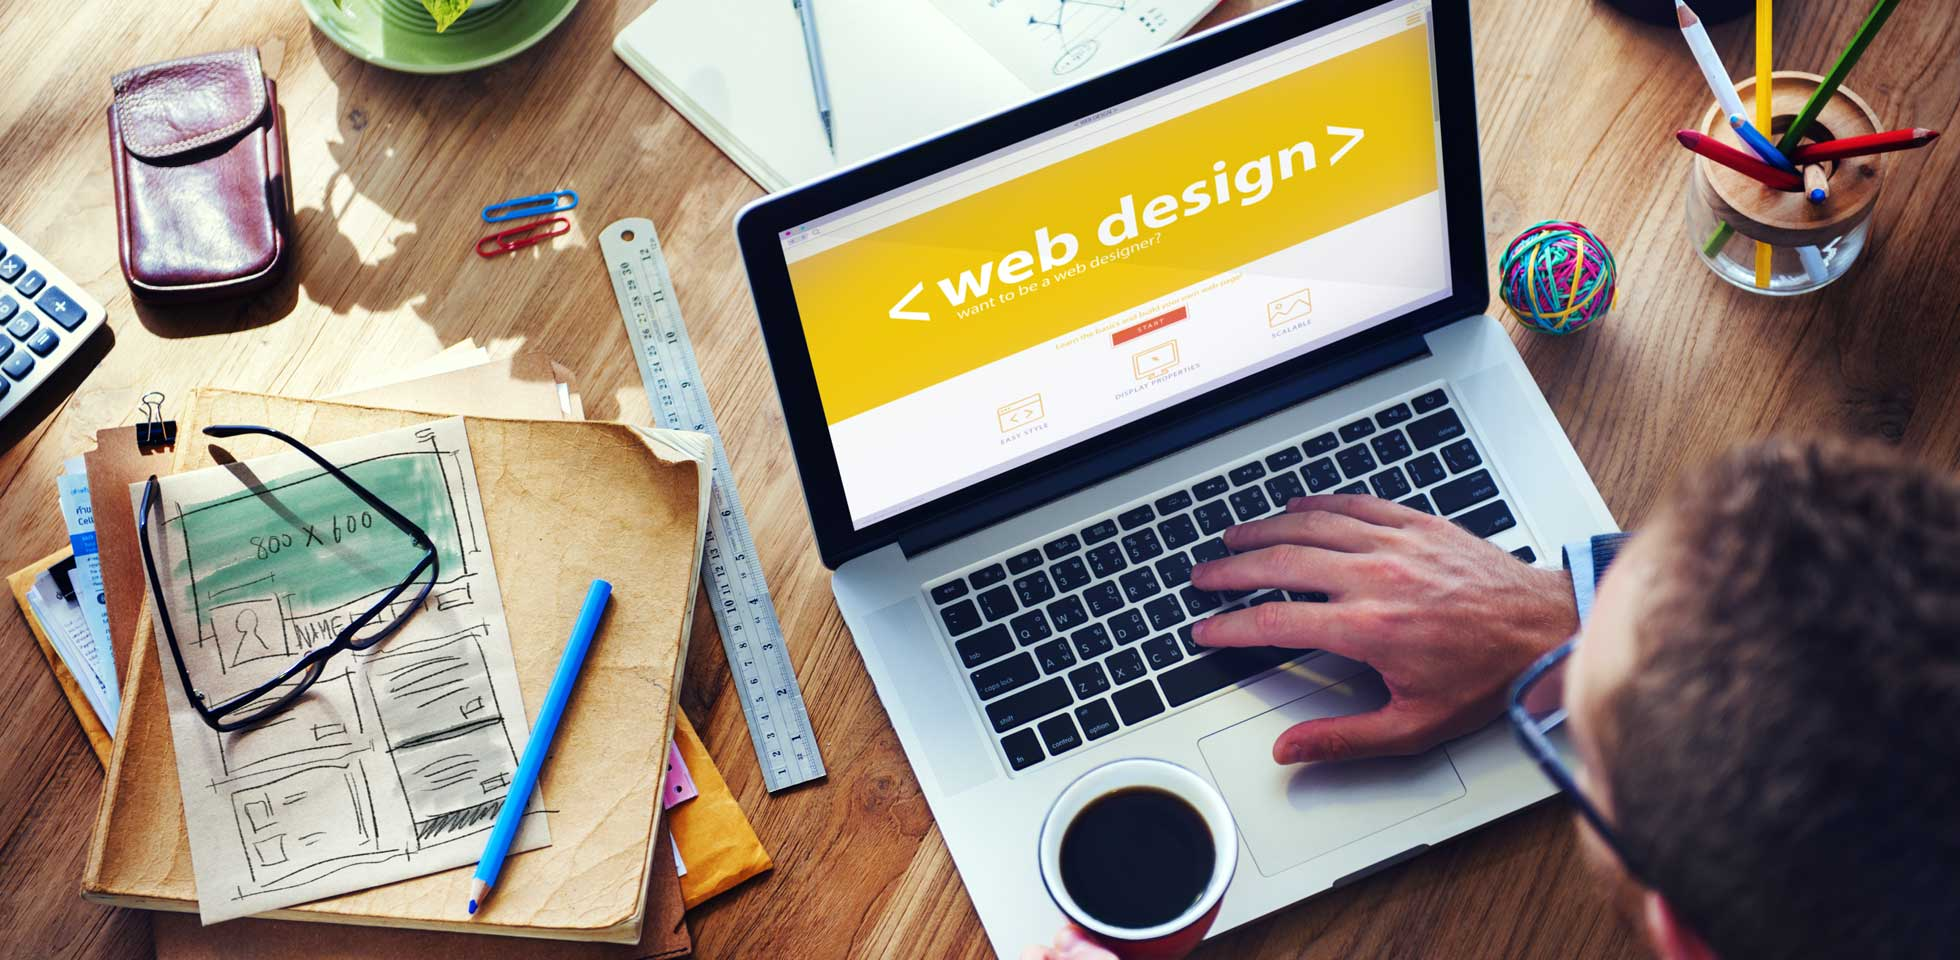 Brand Building -25% OFF - Re-brand your business with creative design services for logos, websites and more.